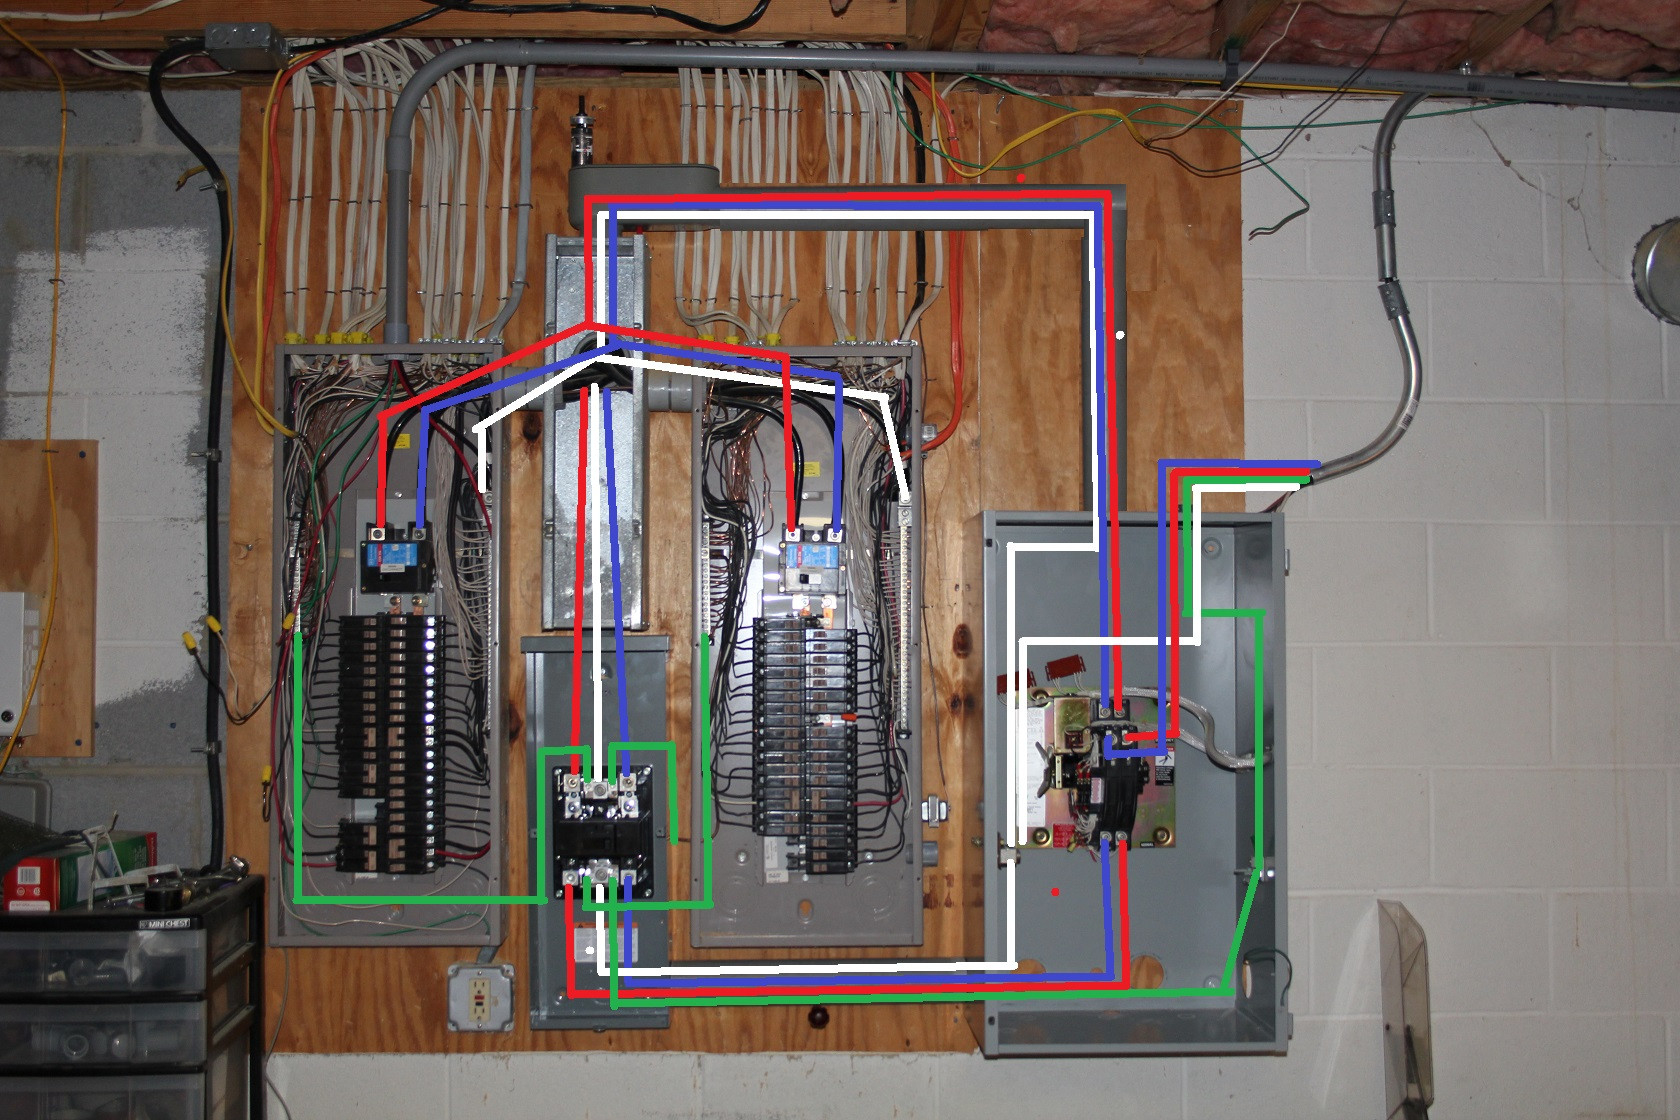 200 Amp Transfer Switch Wiring Diagram | Wiring Library - 200 Amp Automatic Transfer Switch Wiring Diagram